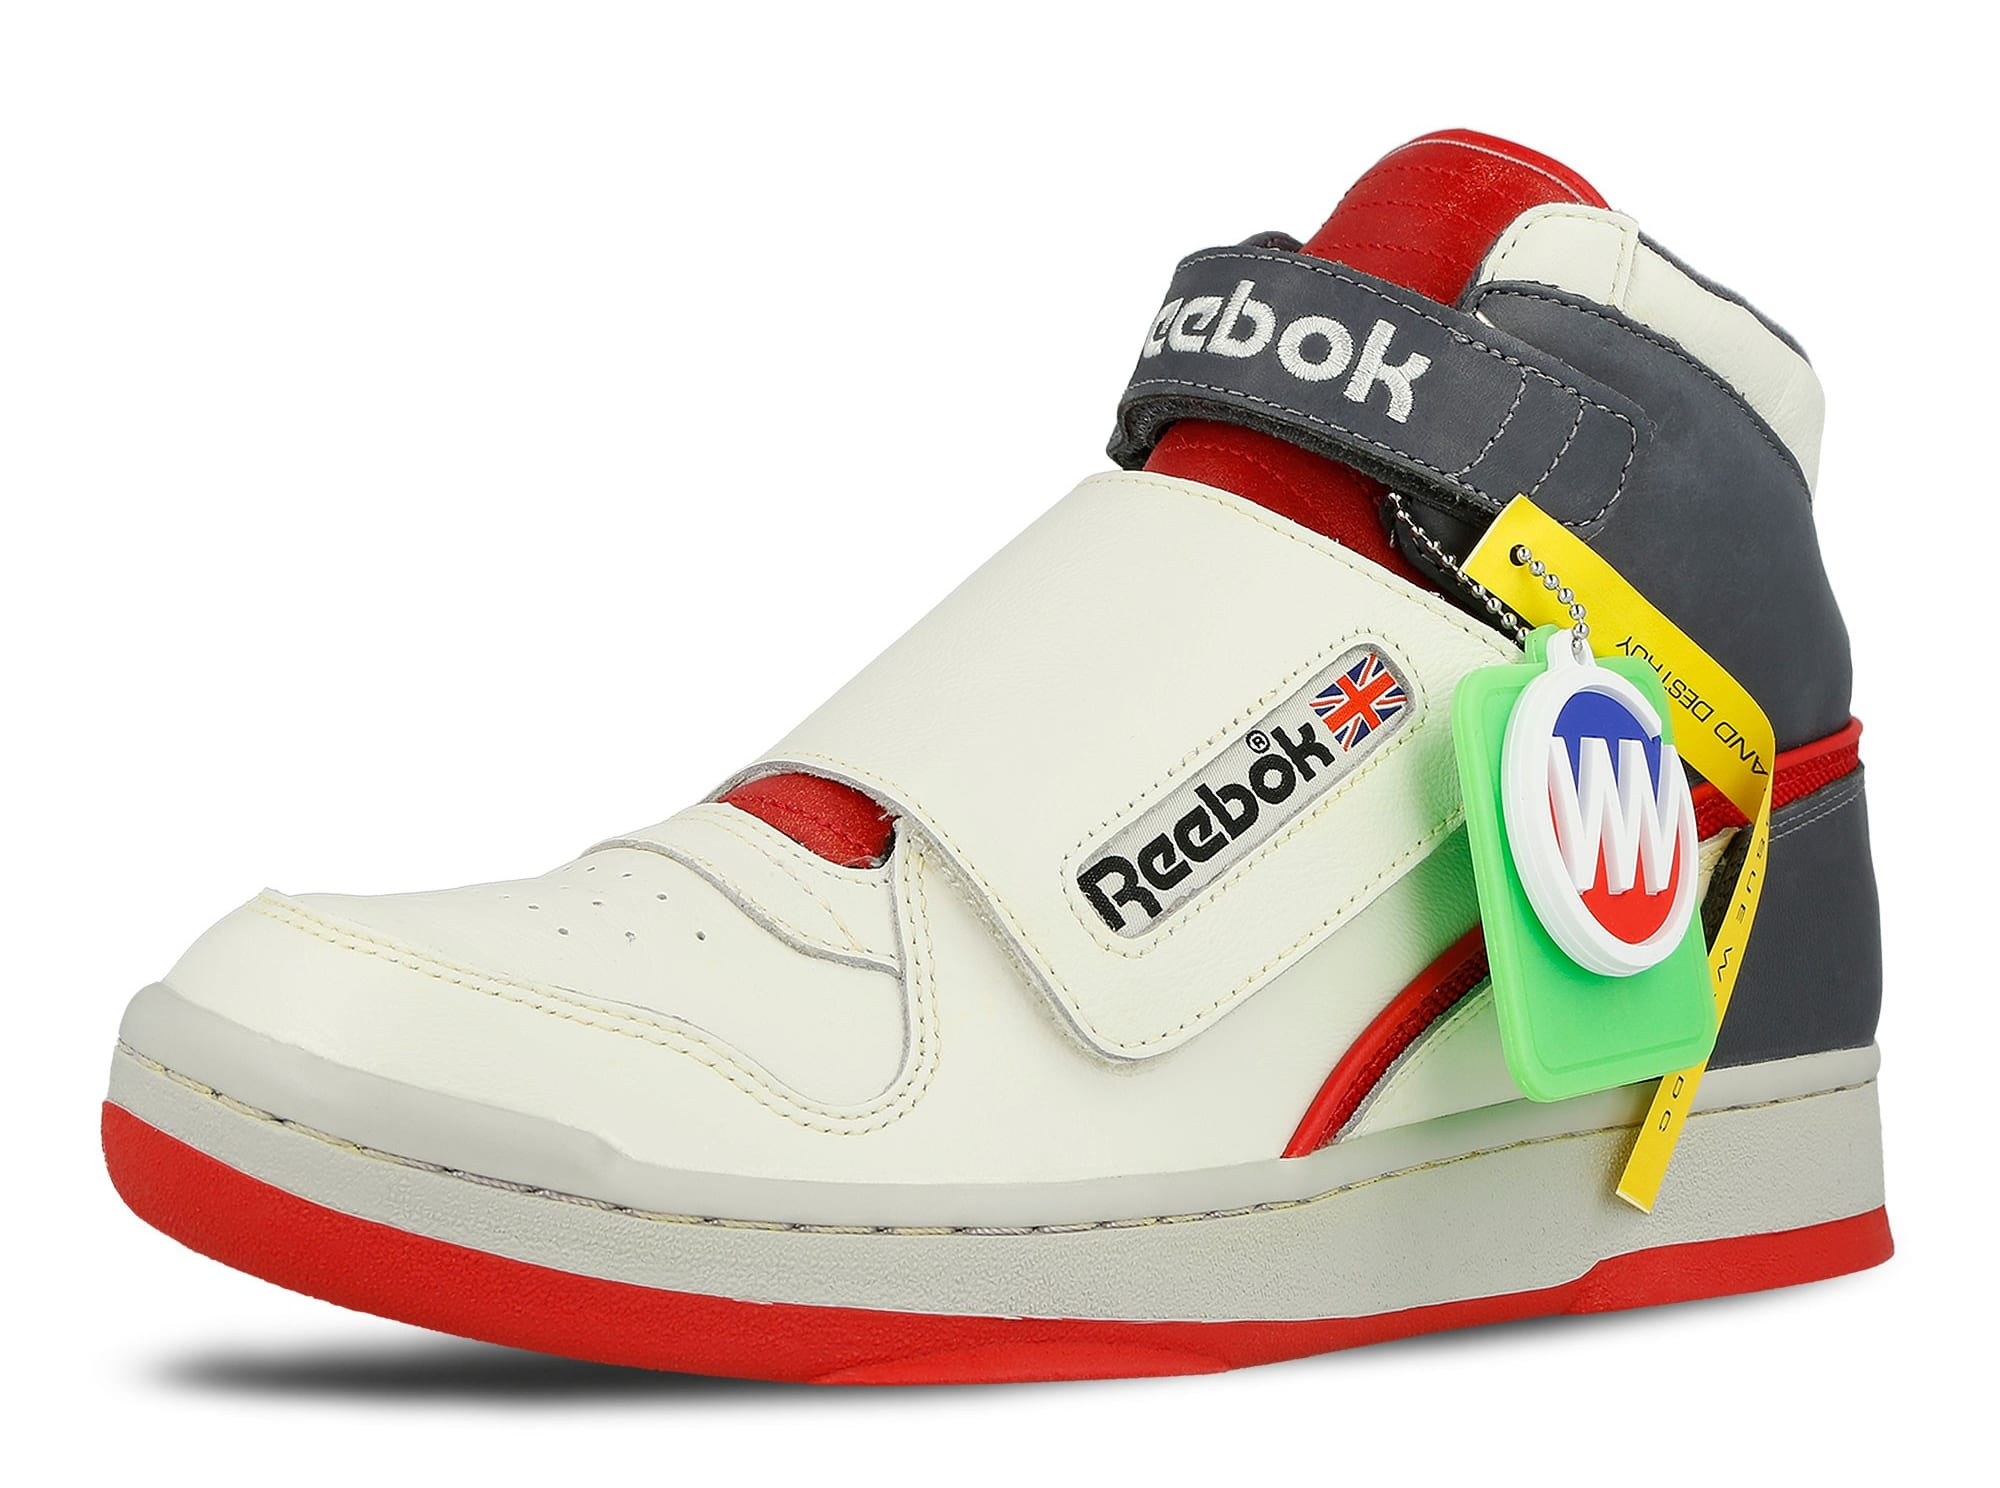 Reebok Alien Stomper Bishop Edition '40th Anniversary' DV8578 (Toe)